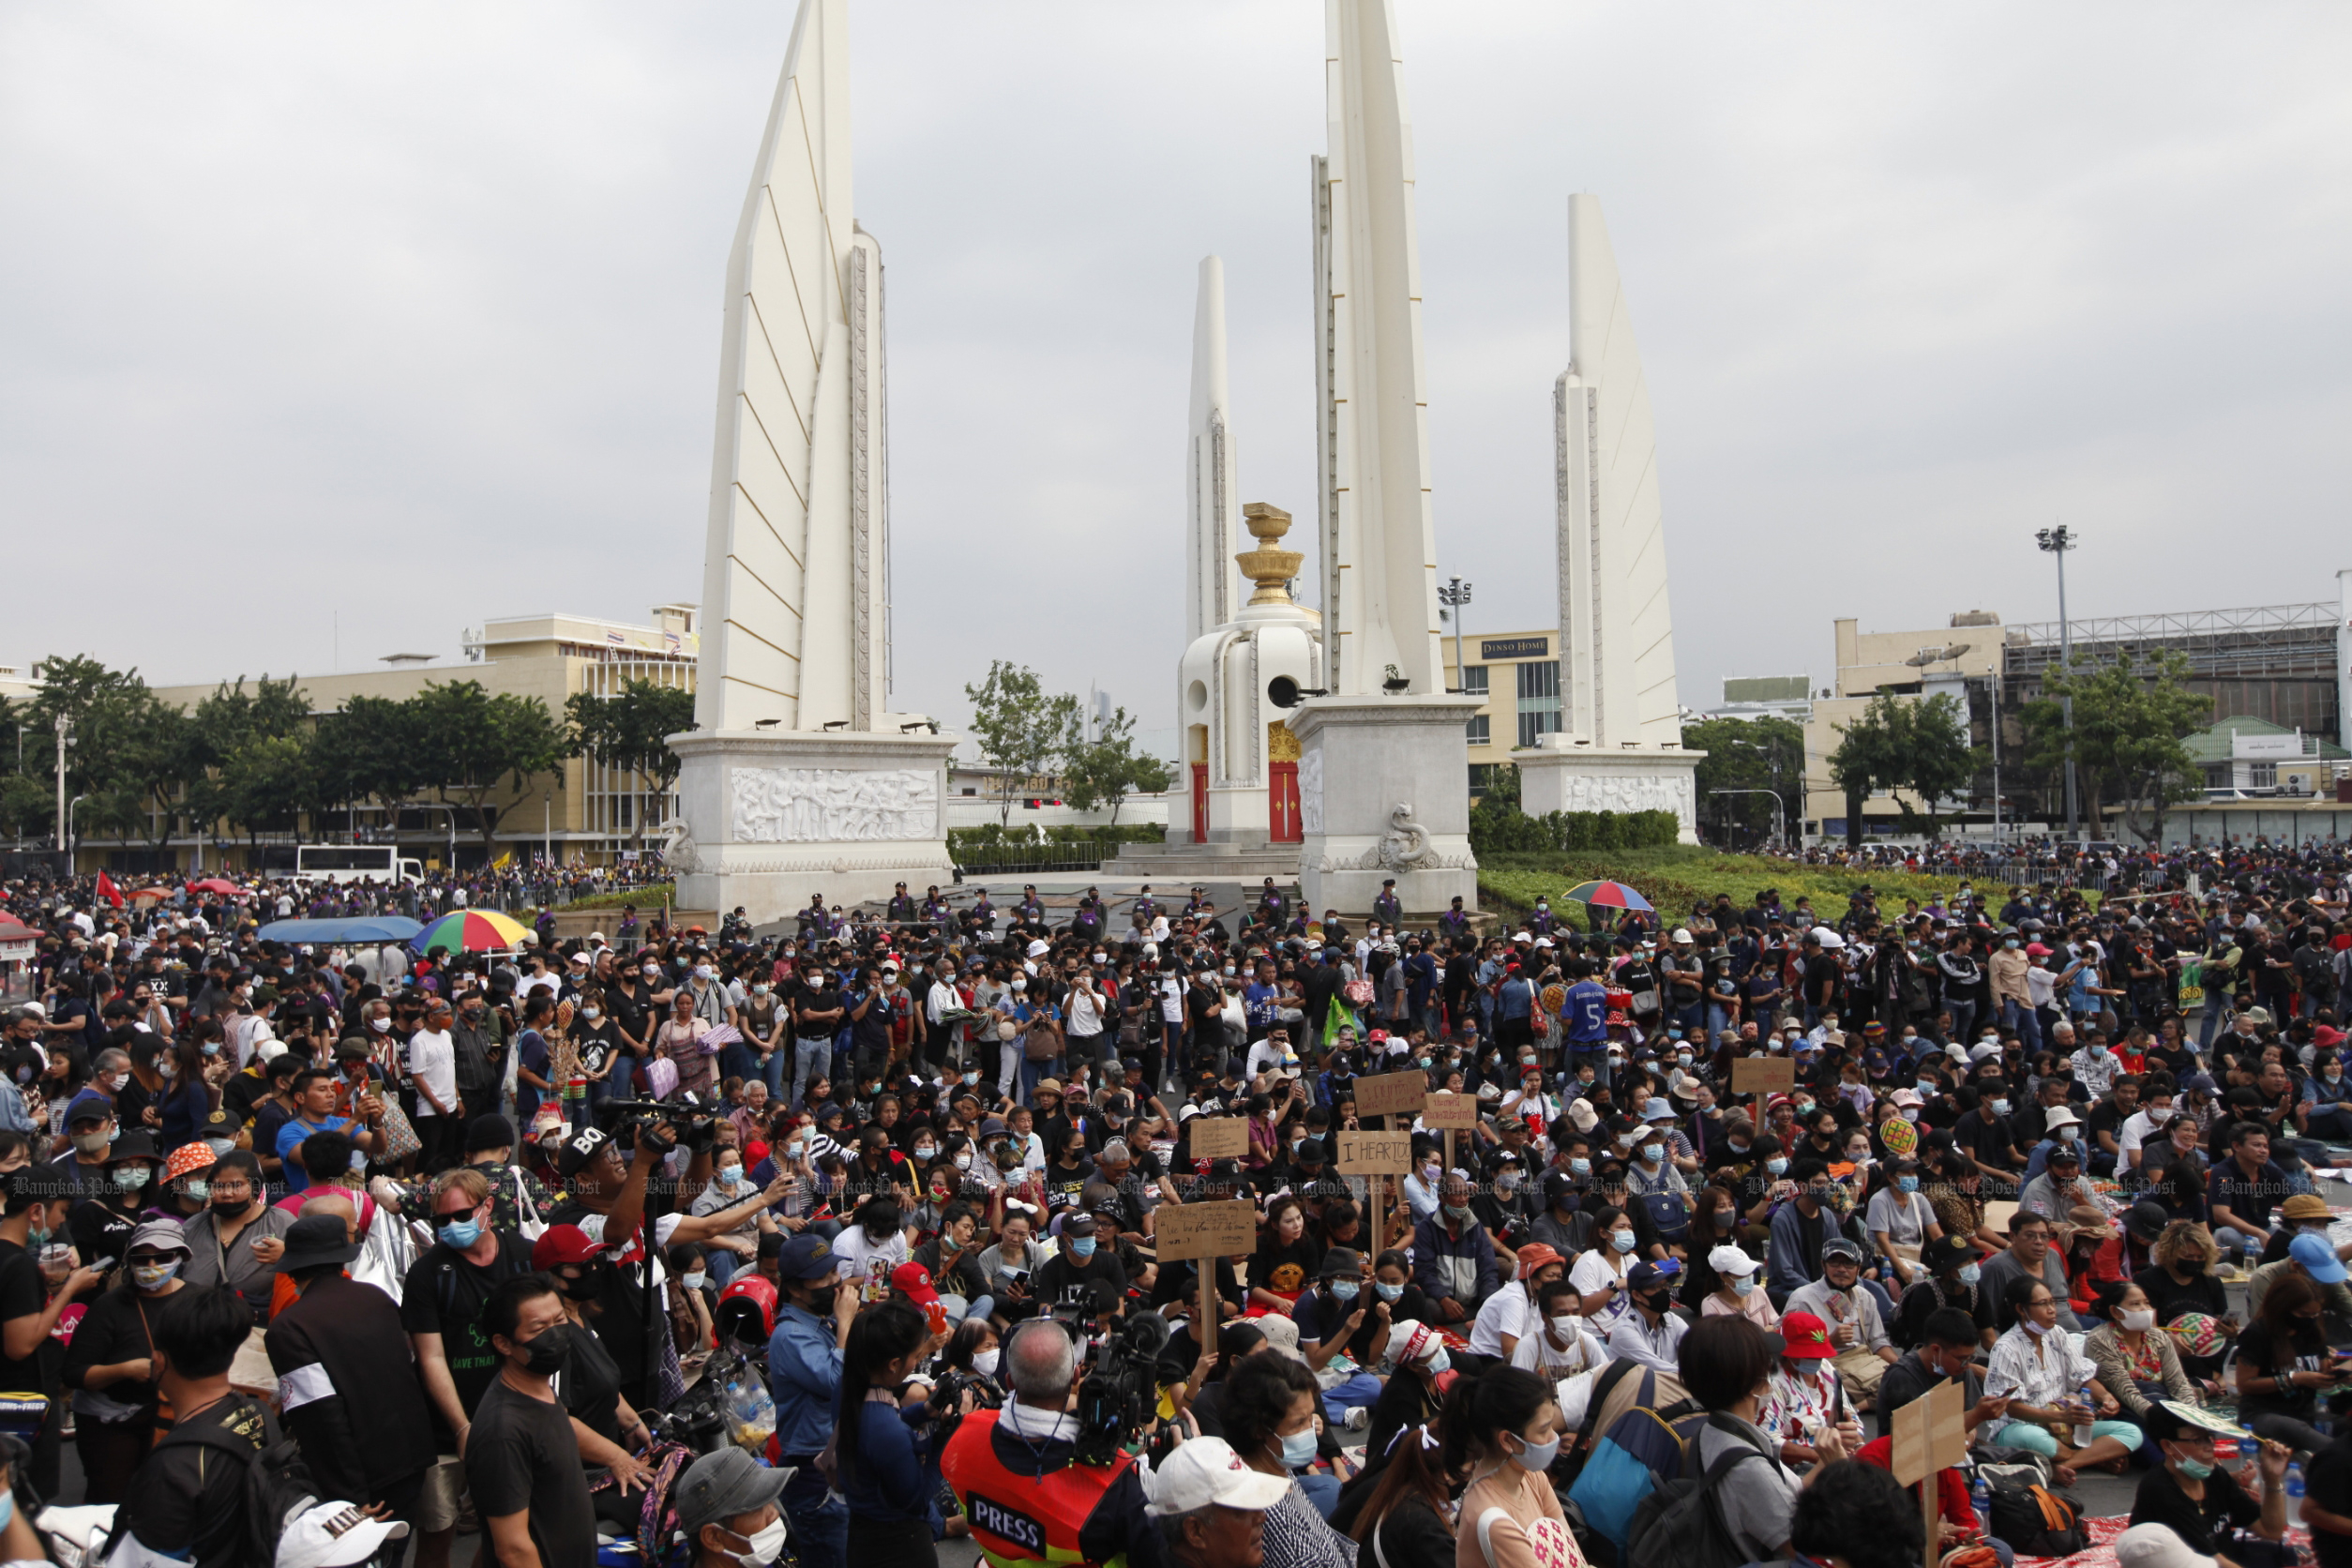 Anti-government protesters gather at the Democracy Monument on Sunday. (Photo by Wichan Charoenkiatpakul)